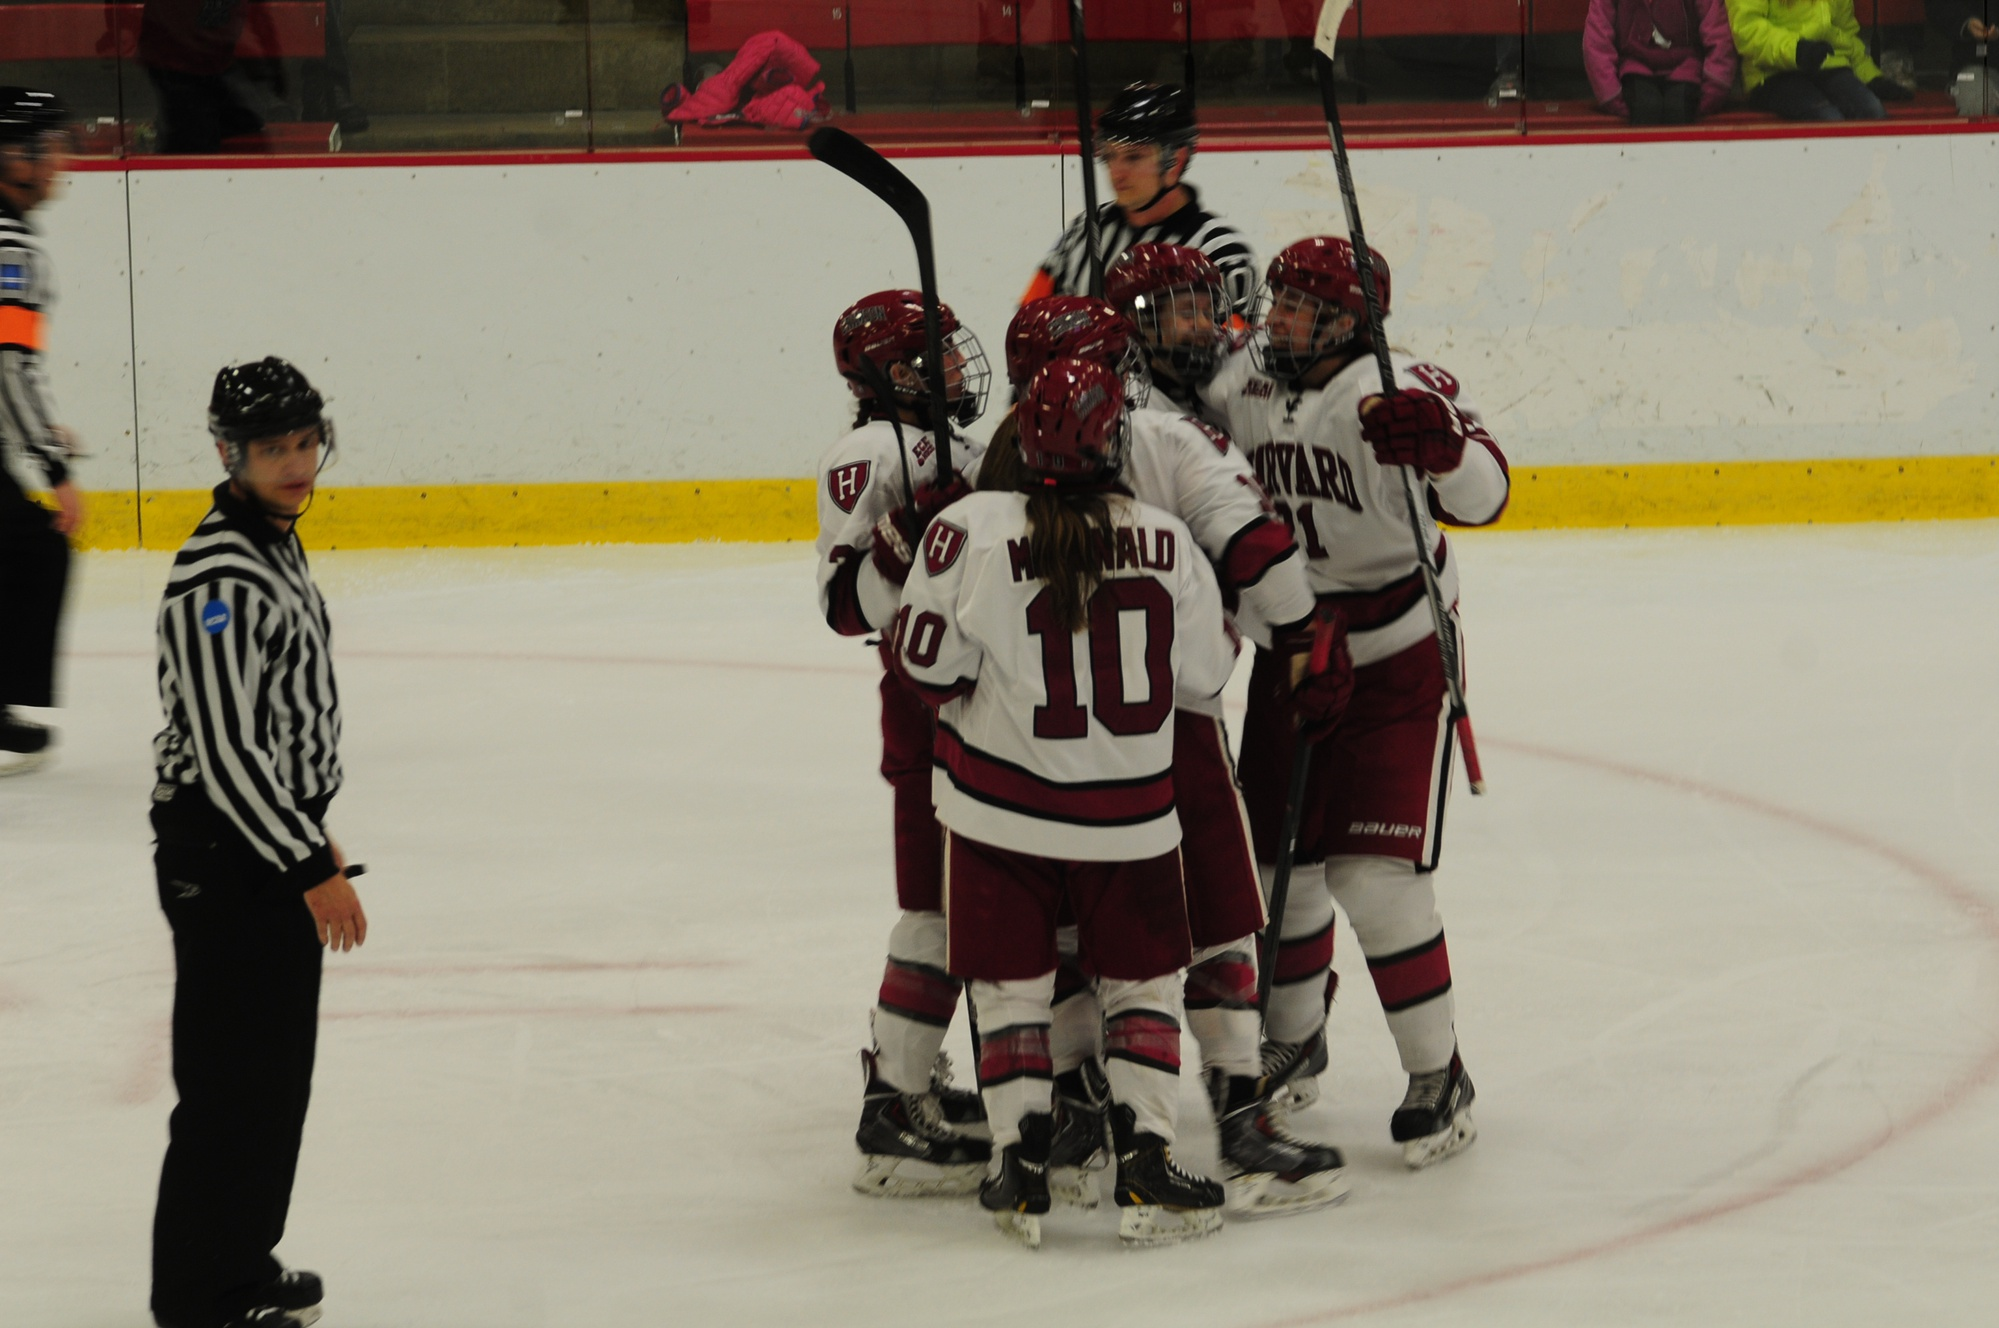 The women's hockey team, shown here in earlier action, recorded two victories in its opening weekend.